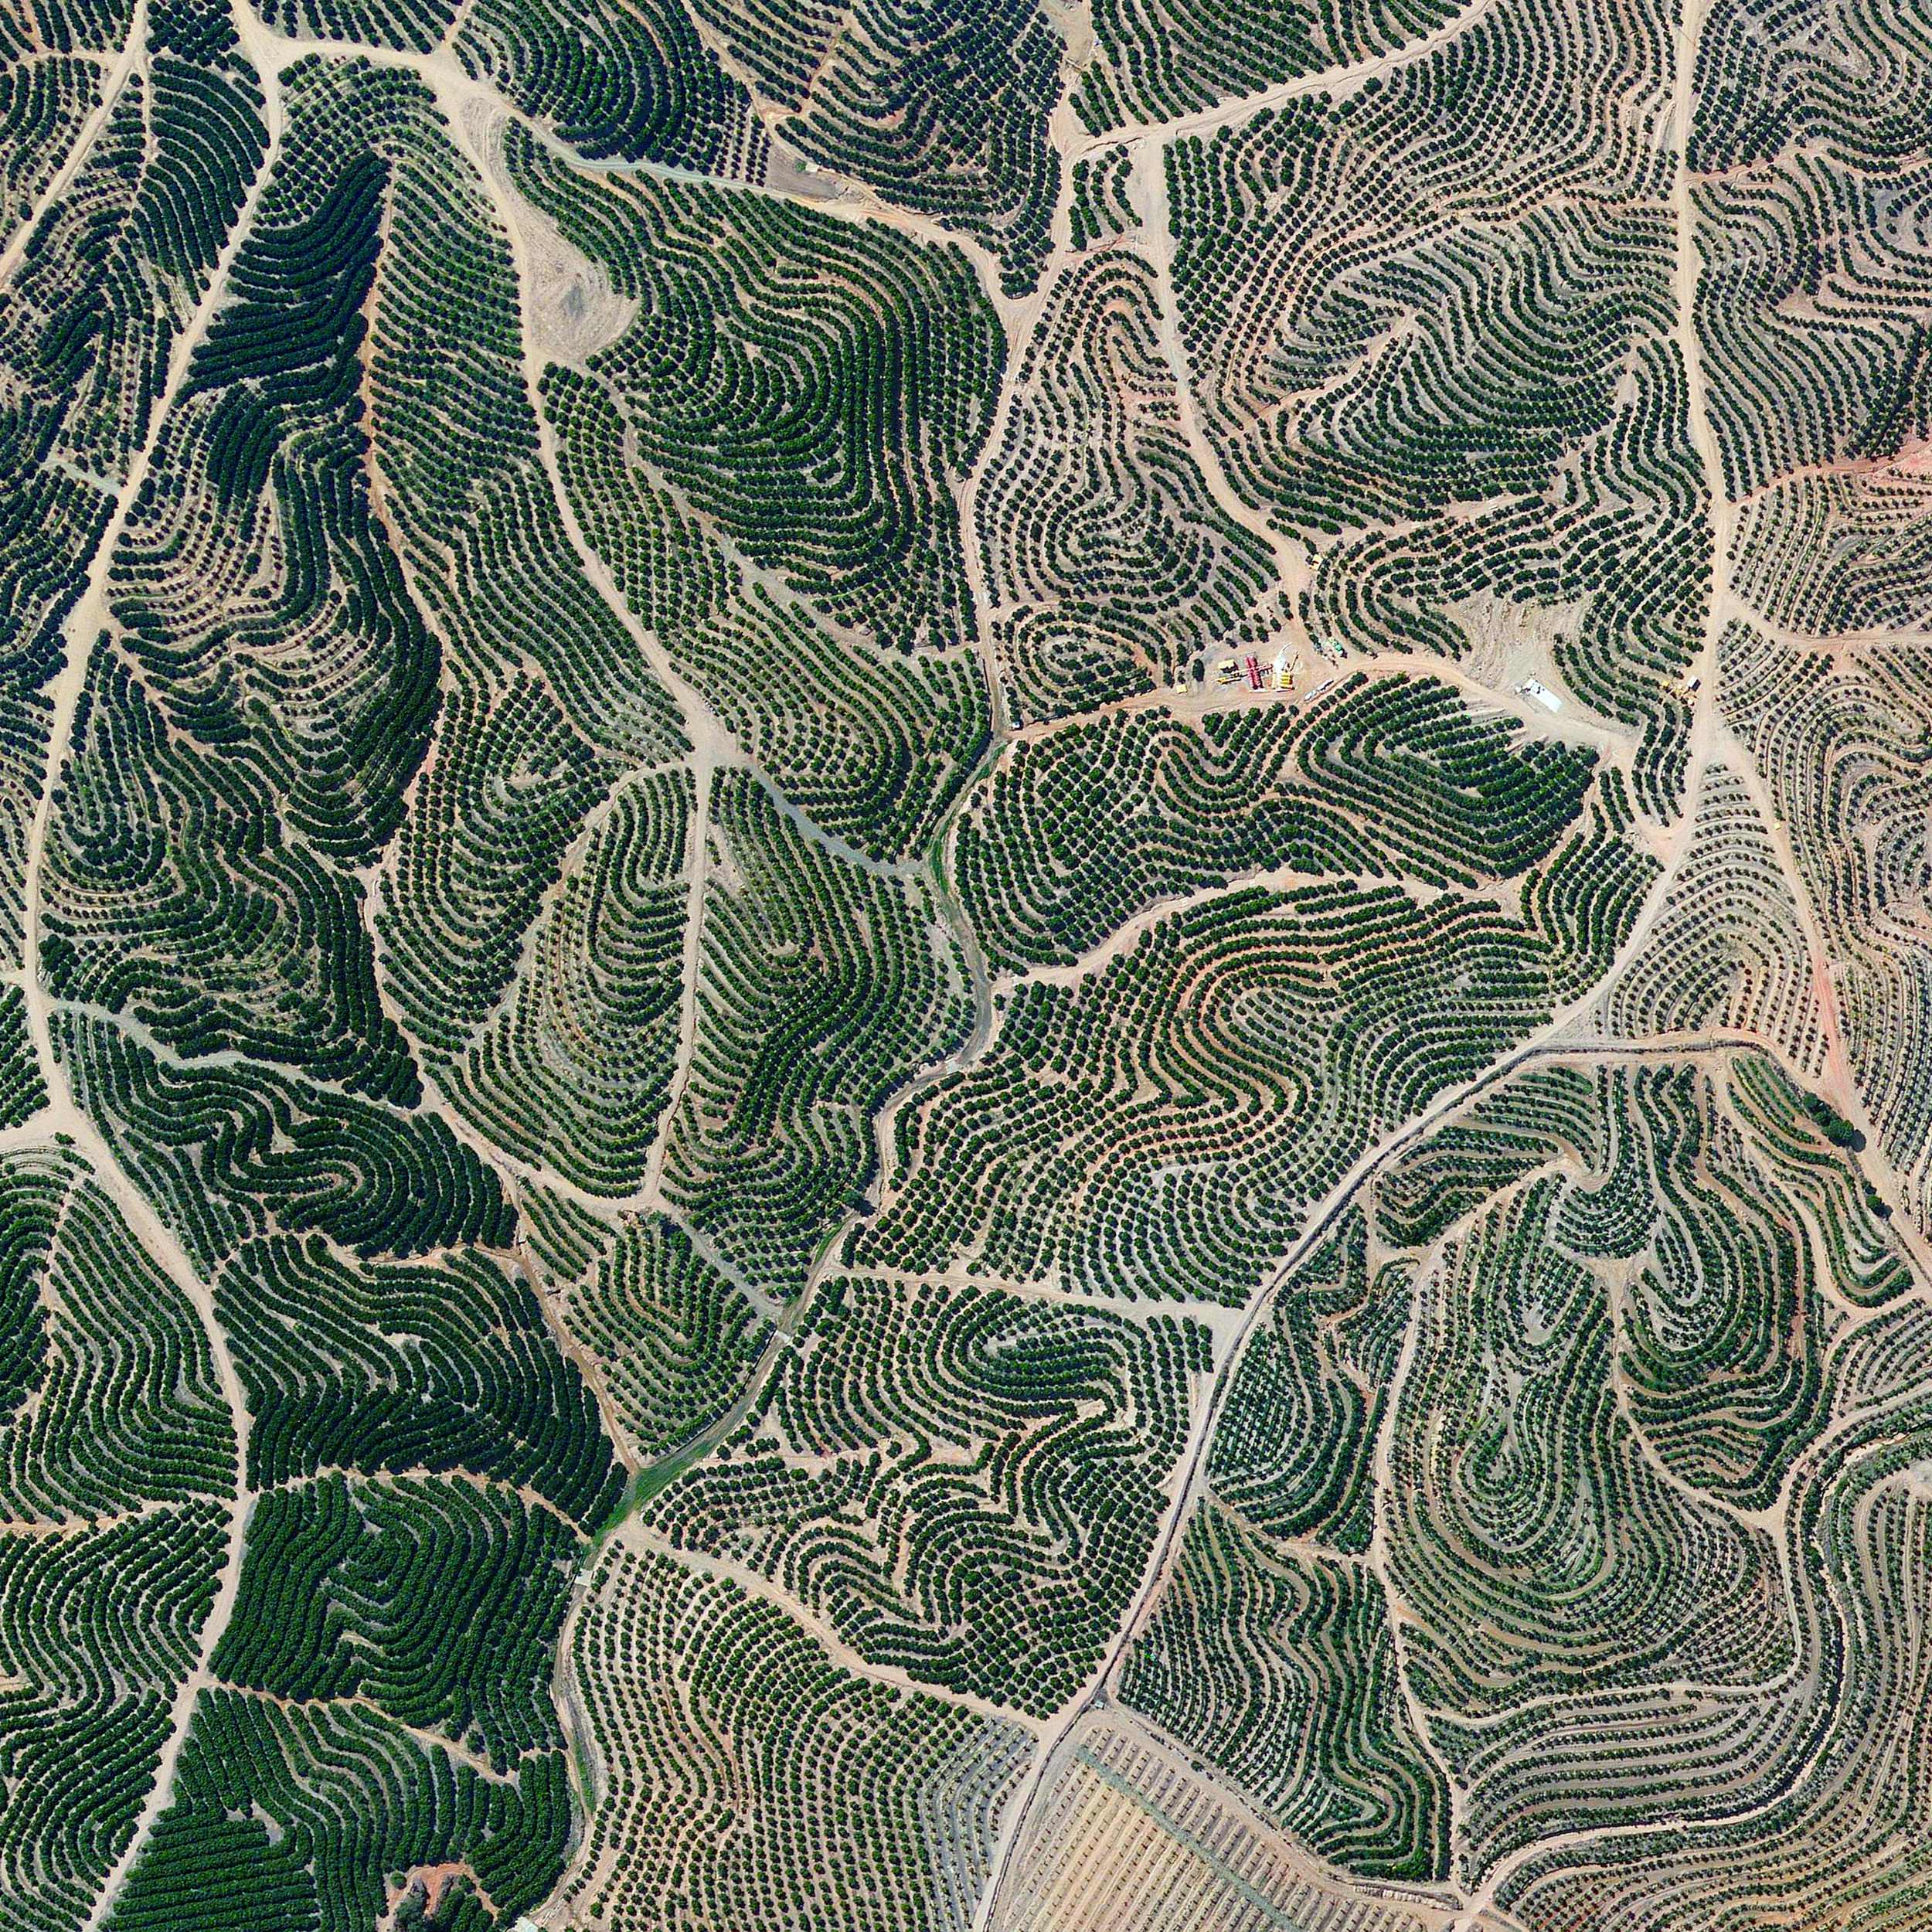 10/1/2015  Citrus trees  Isla Cristina, Spain  37.241136526°, -7.294464438°    Citrus trees cover the landscape in Isla Cristina, Spain. The climate is ideal for this growth with an average temperature of 64 degrees (18° celsius) and a relative humidity between 60% and 80%.